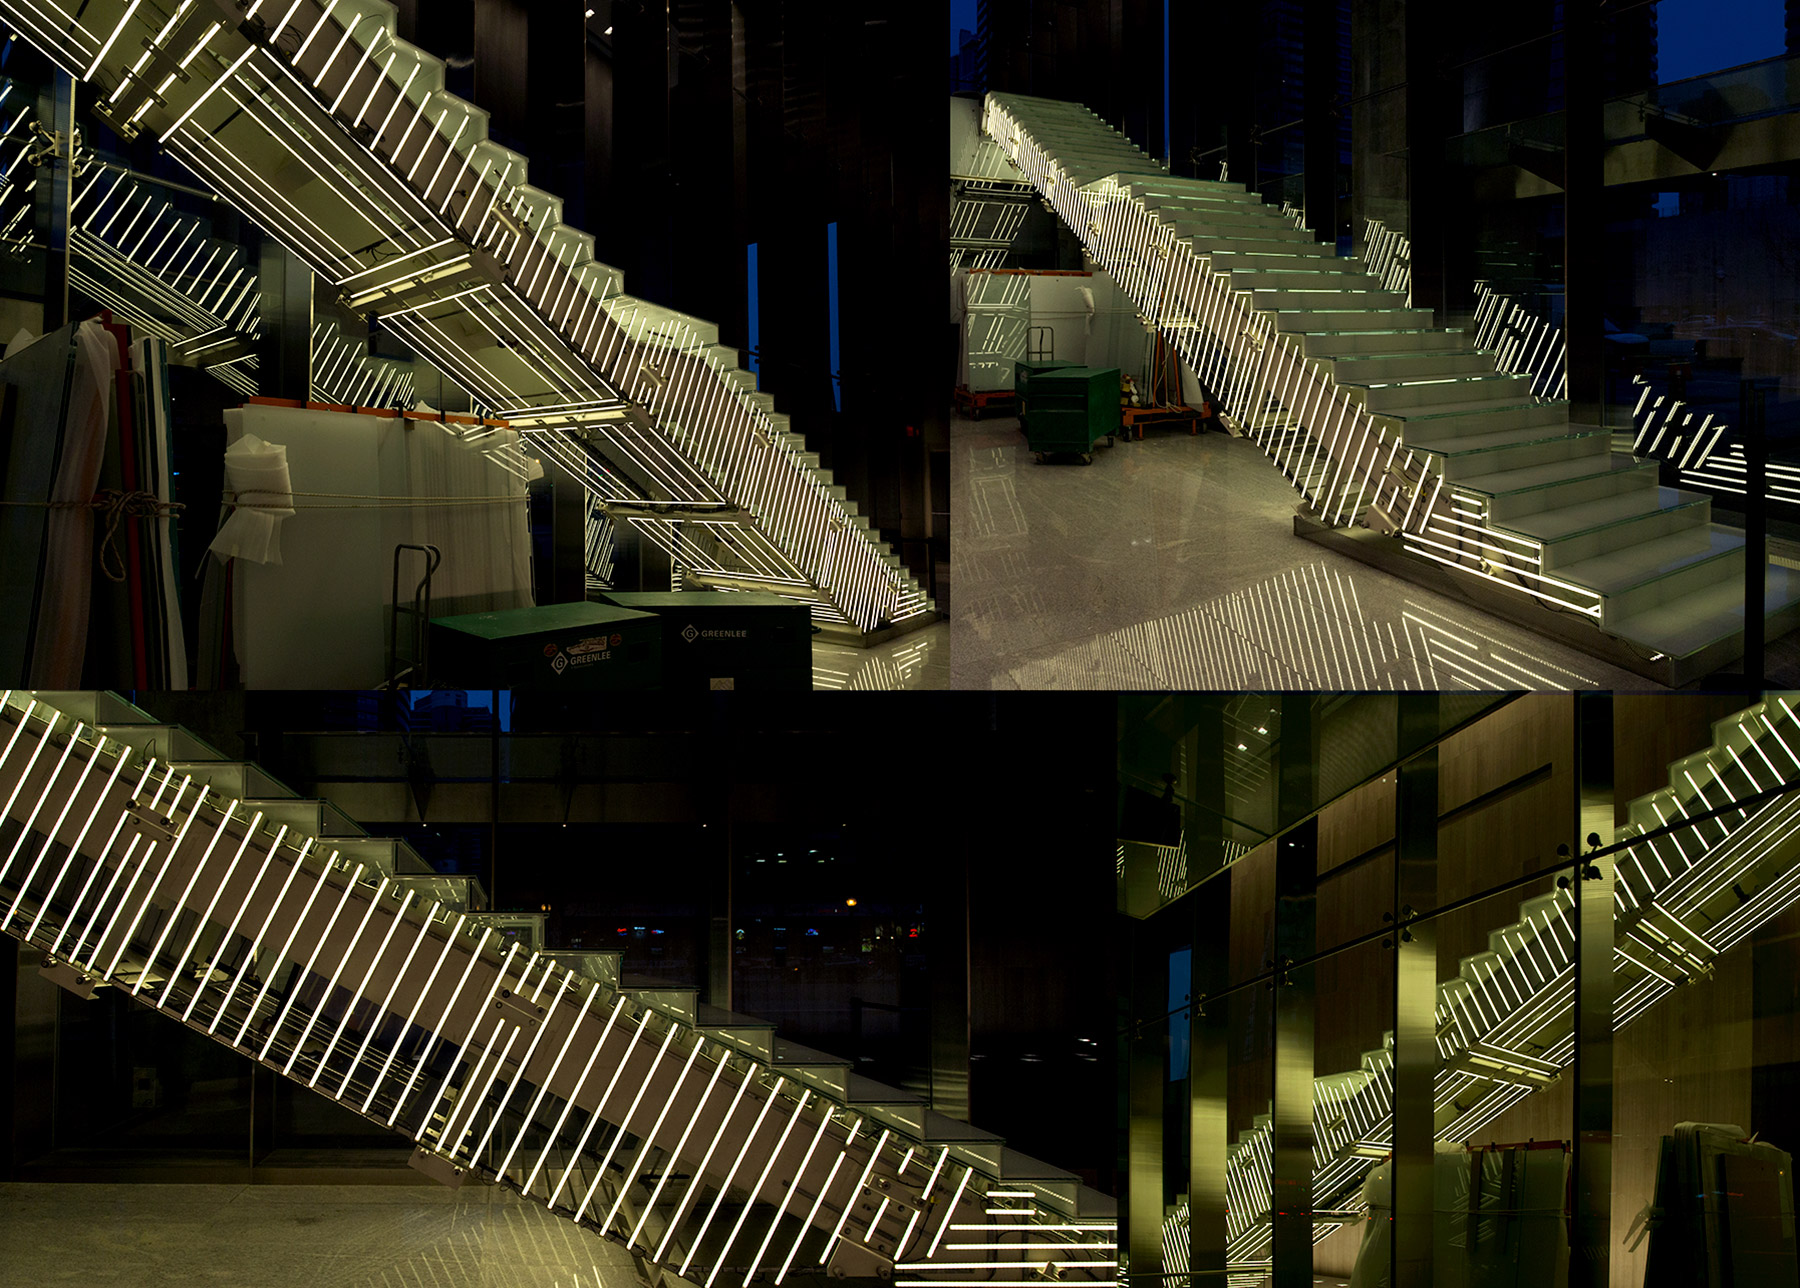 20141202. The impressive light stairs at Toronto's recently open